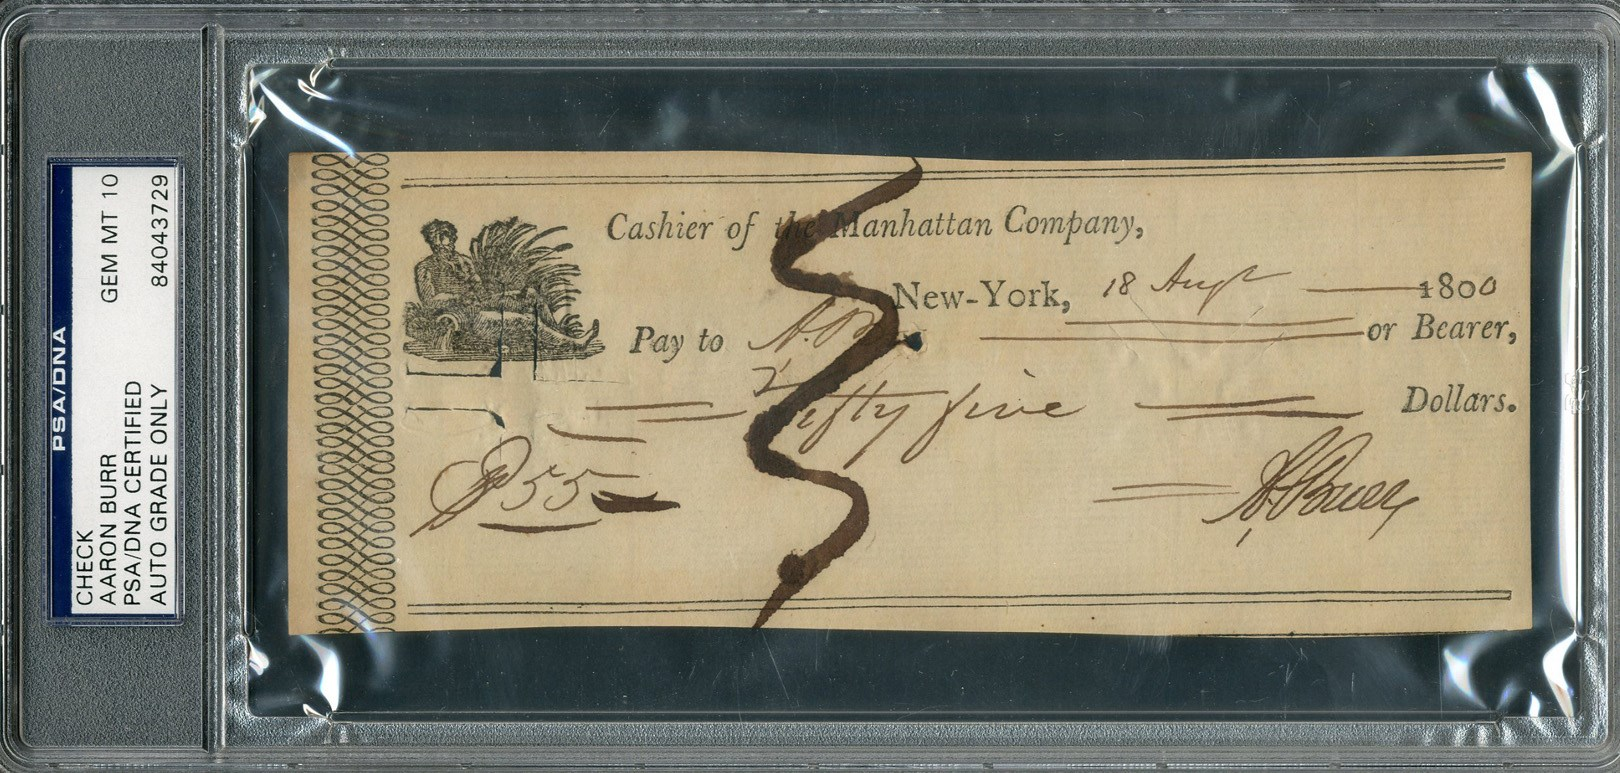 1800 Aaron Burr Signed Check (PSA GEM MT 10)